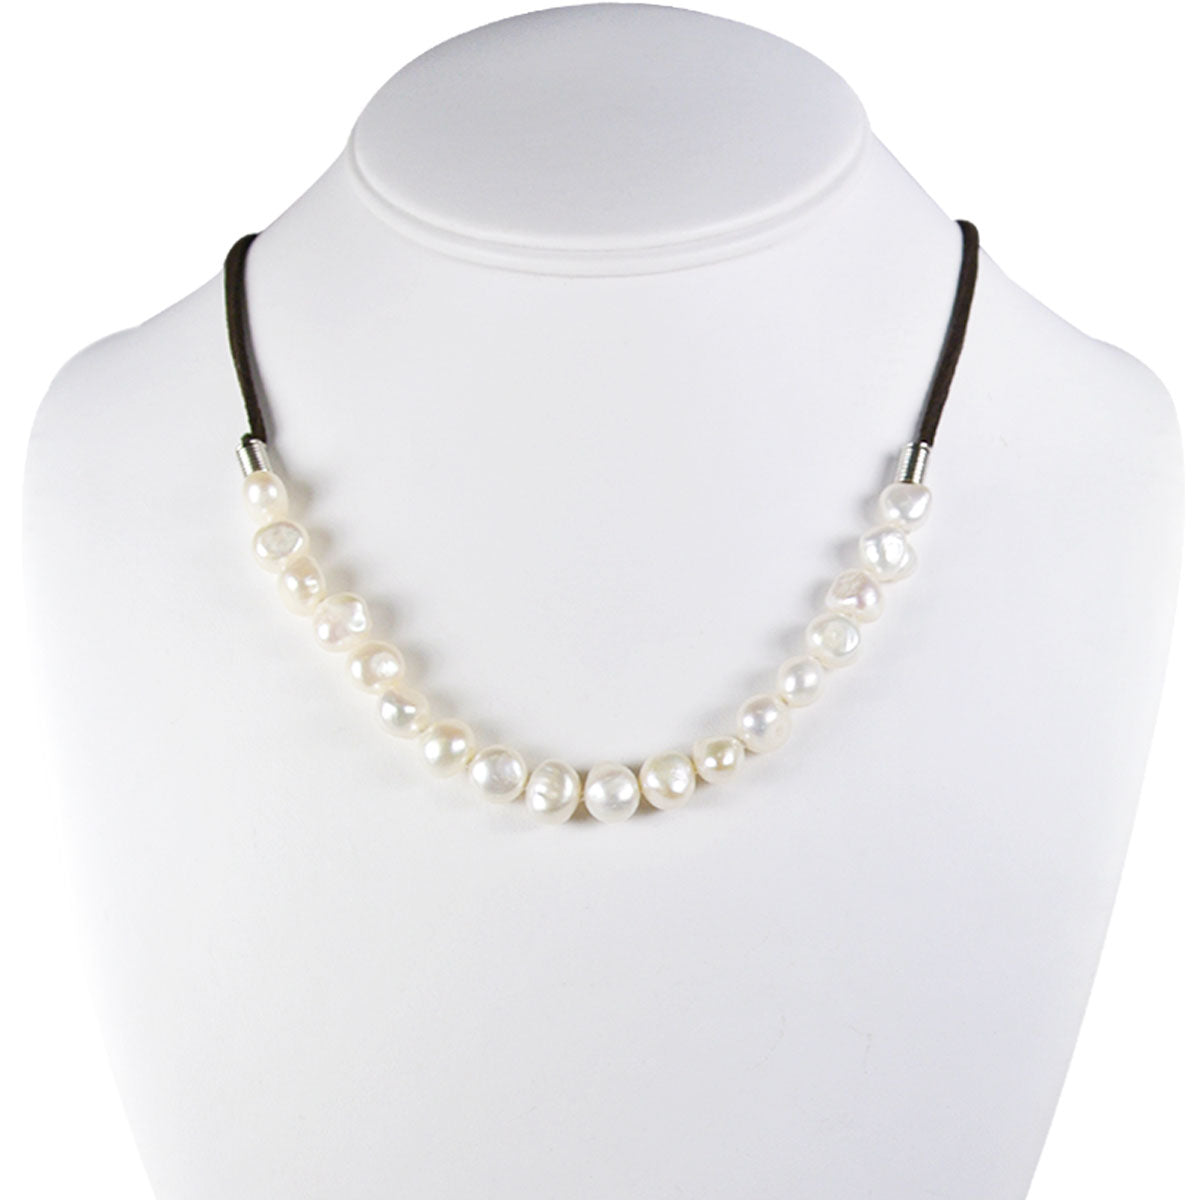 String of Faux Pearls Necklace